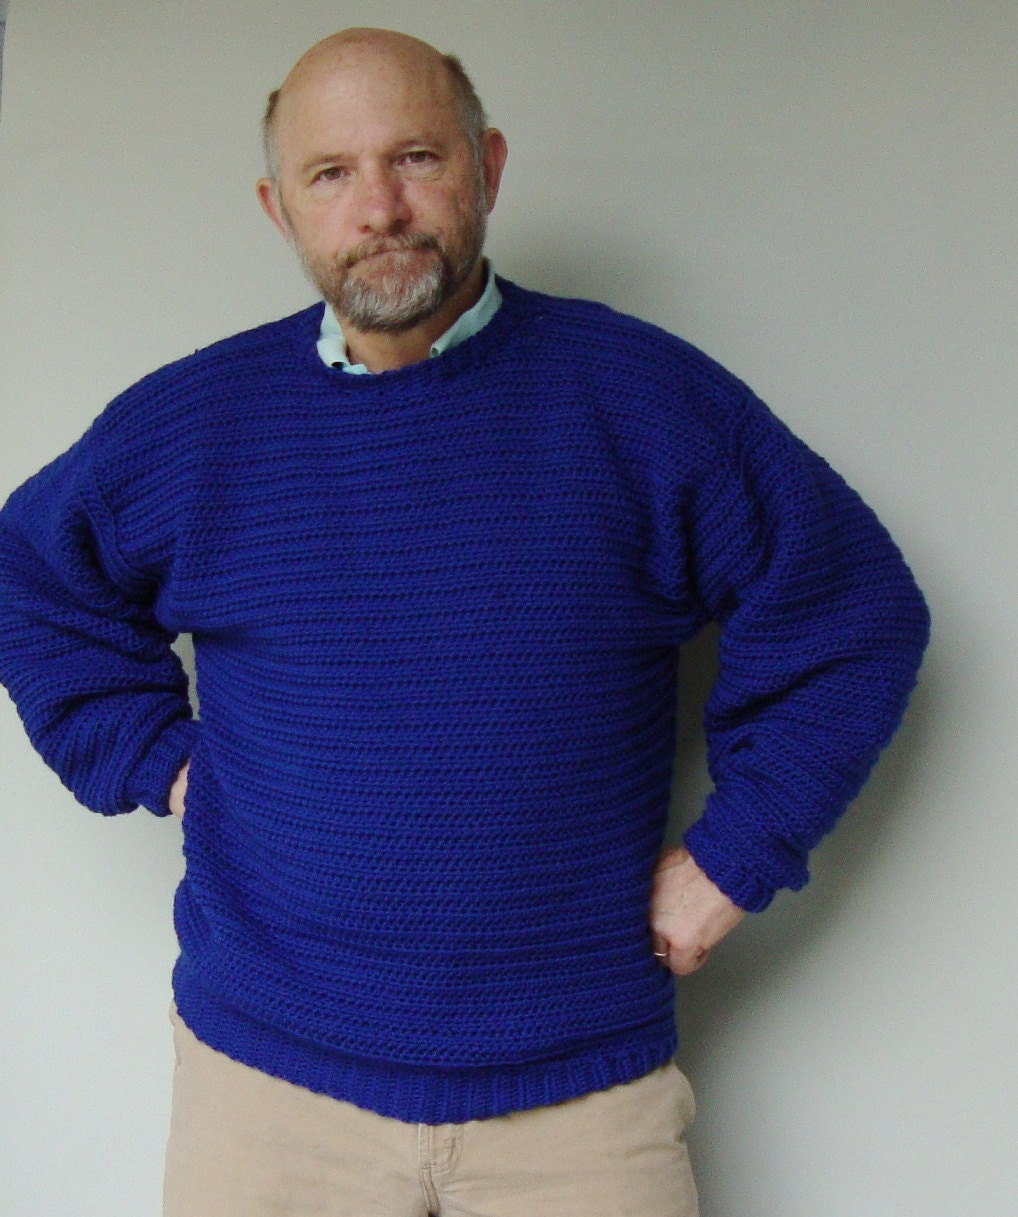 Men's Sweater Blue Sweaters Men's Wool Sweater Wool